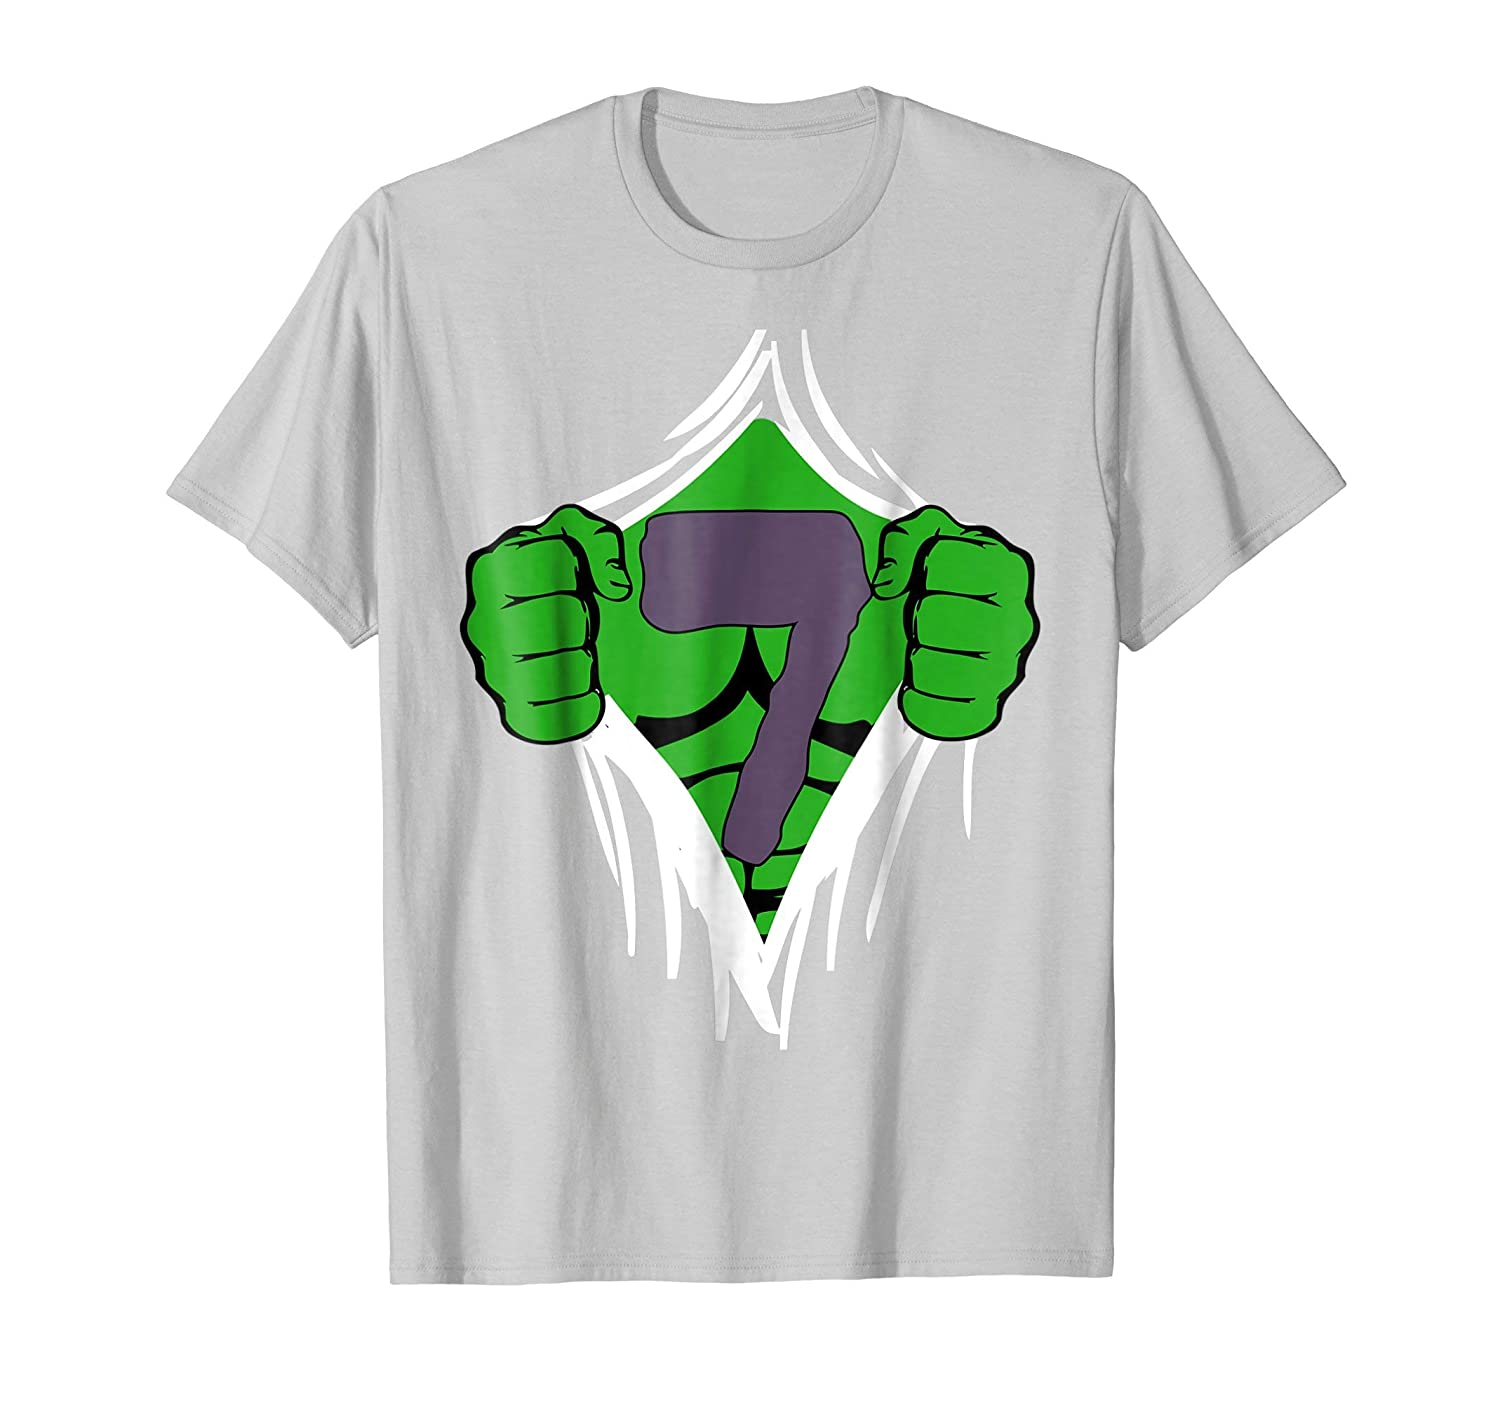 Green Man Chest Superhero Birthday Shirt For 7 Year Old Boys Teechatpro